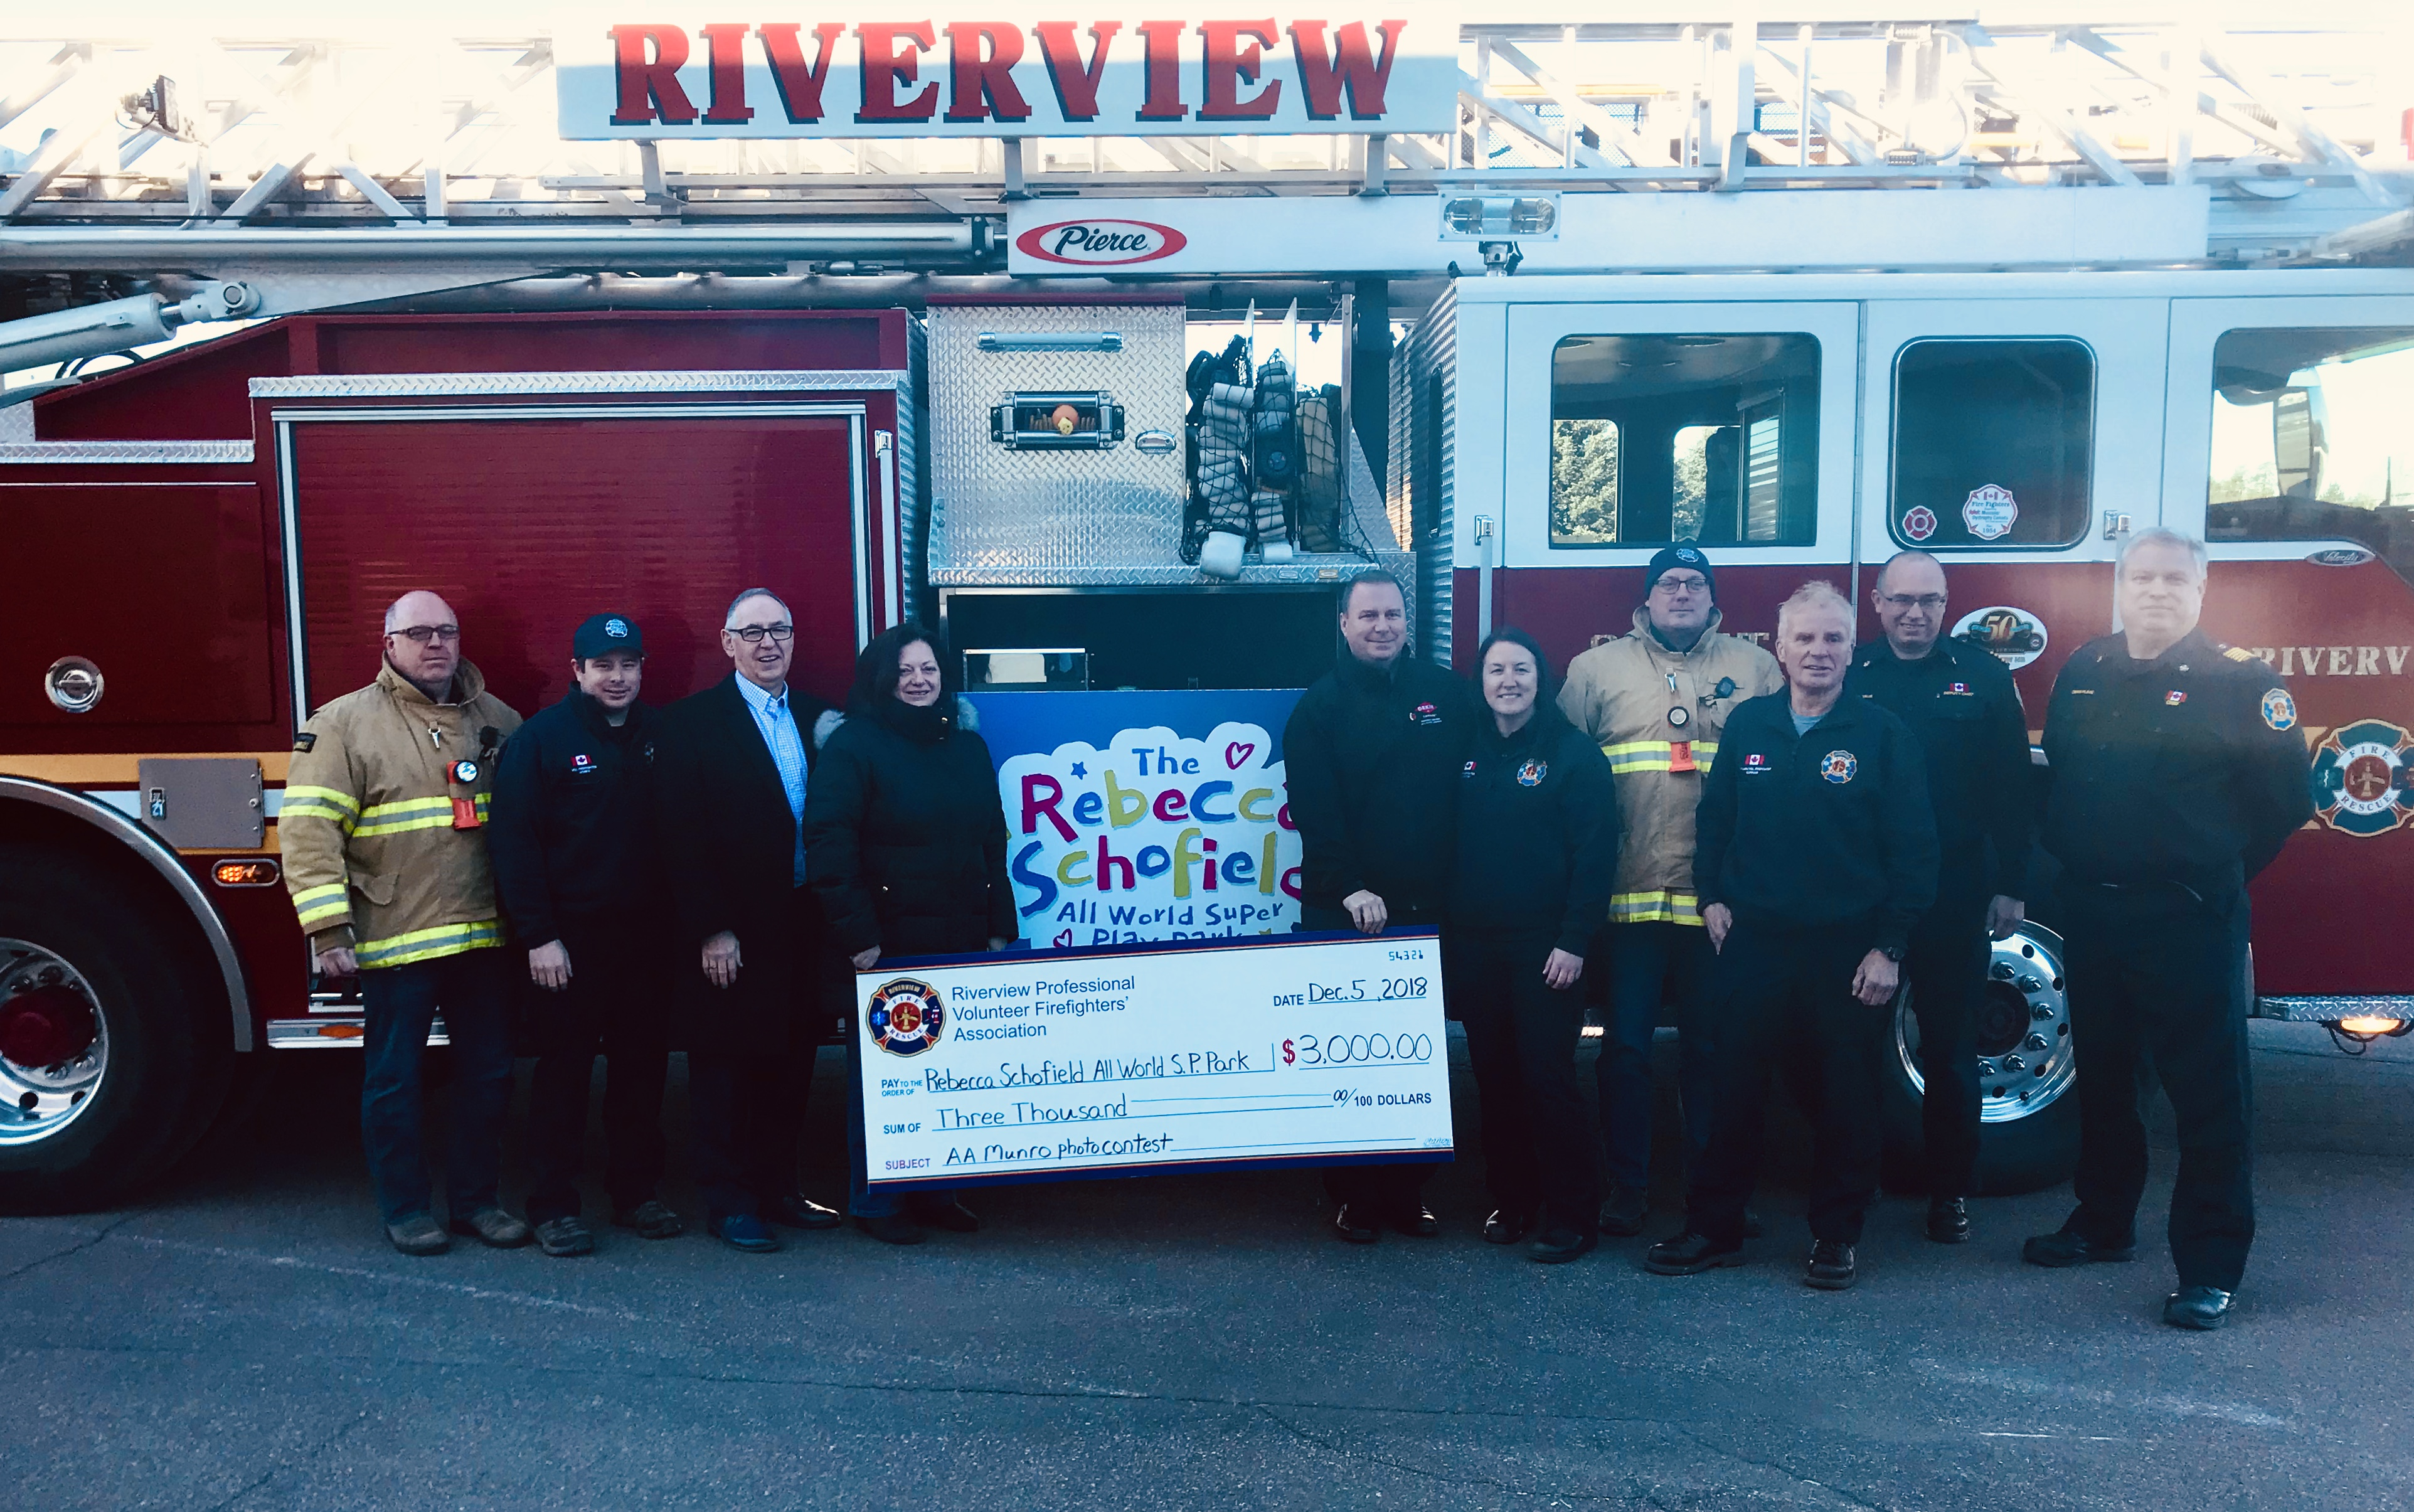 Firefighters in Riverview, New Brunswick gather with Anne Schofield and Wayne Ezekiel